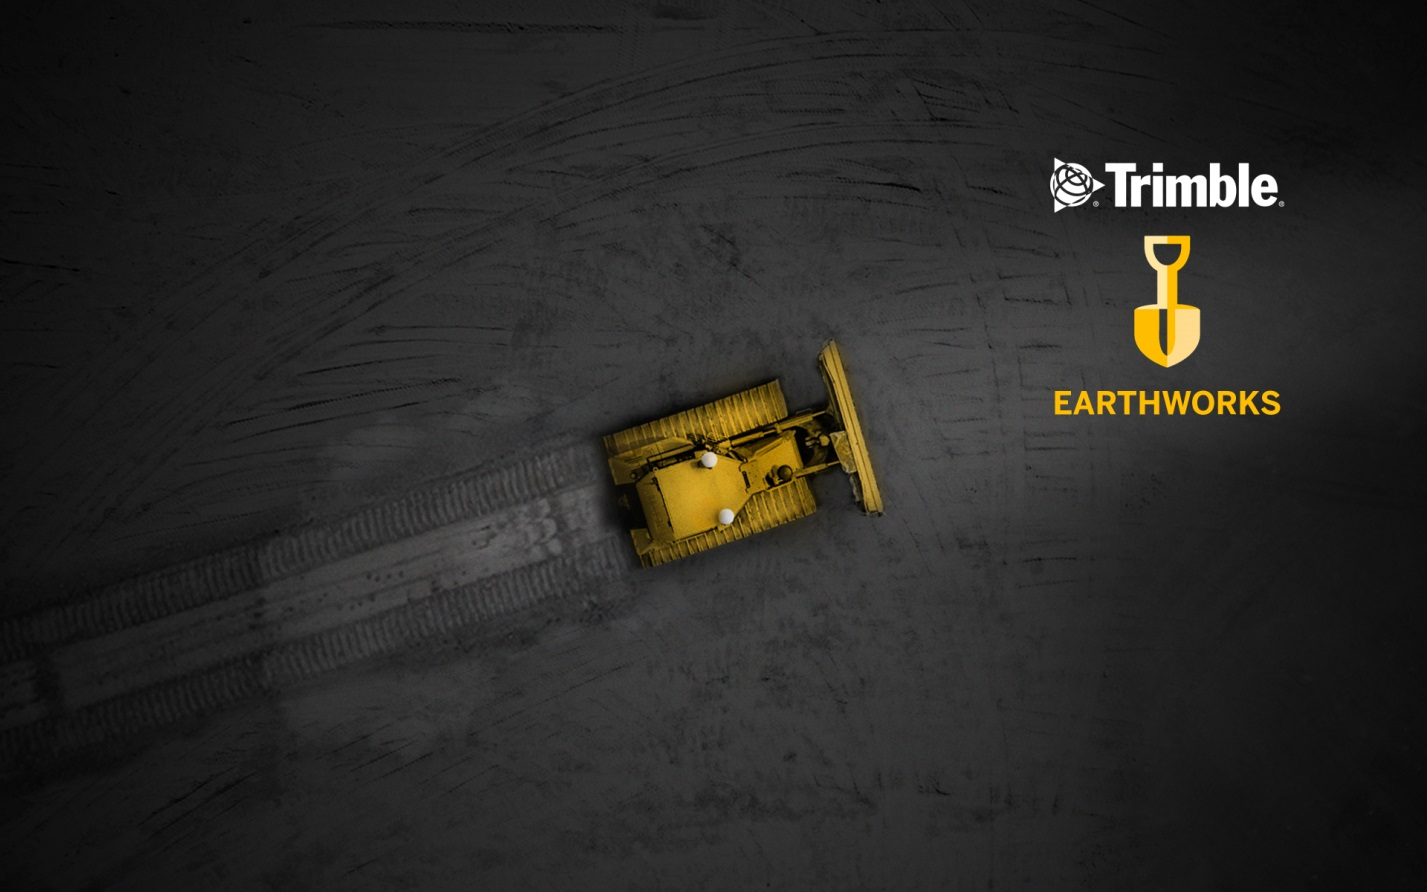 Trimble® Earthworks для бульдозеров